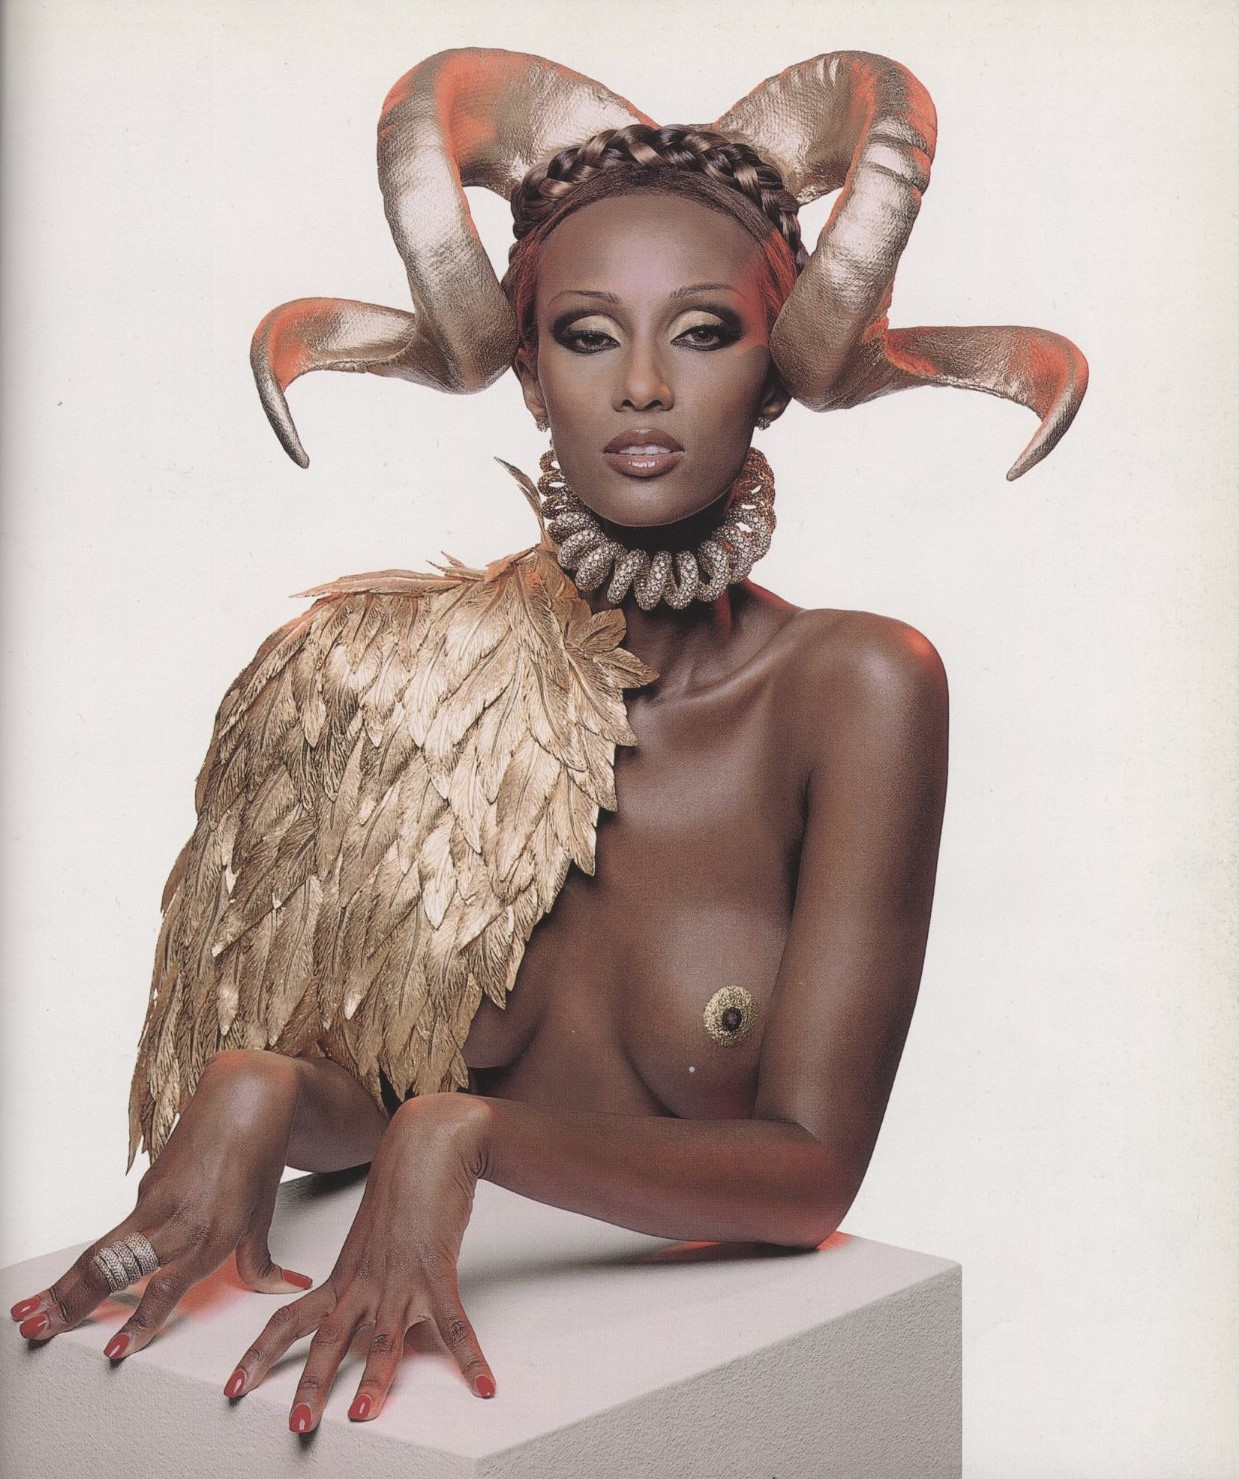 IMAN IN GIVENCHY BY ALEXANDER MCQUEEN SPRING/SUMMER 1997, PHOTOGRAPHY INEZ VAN LAMSWEERDE & VINOODH MATADIN, VISIONAIRE #21, 1997